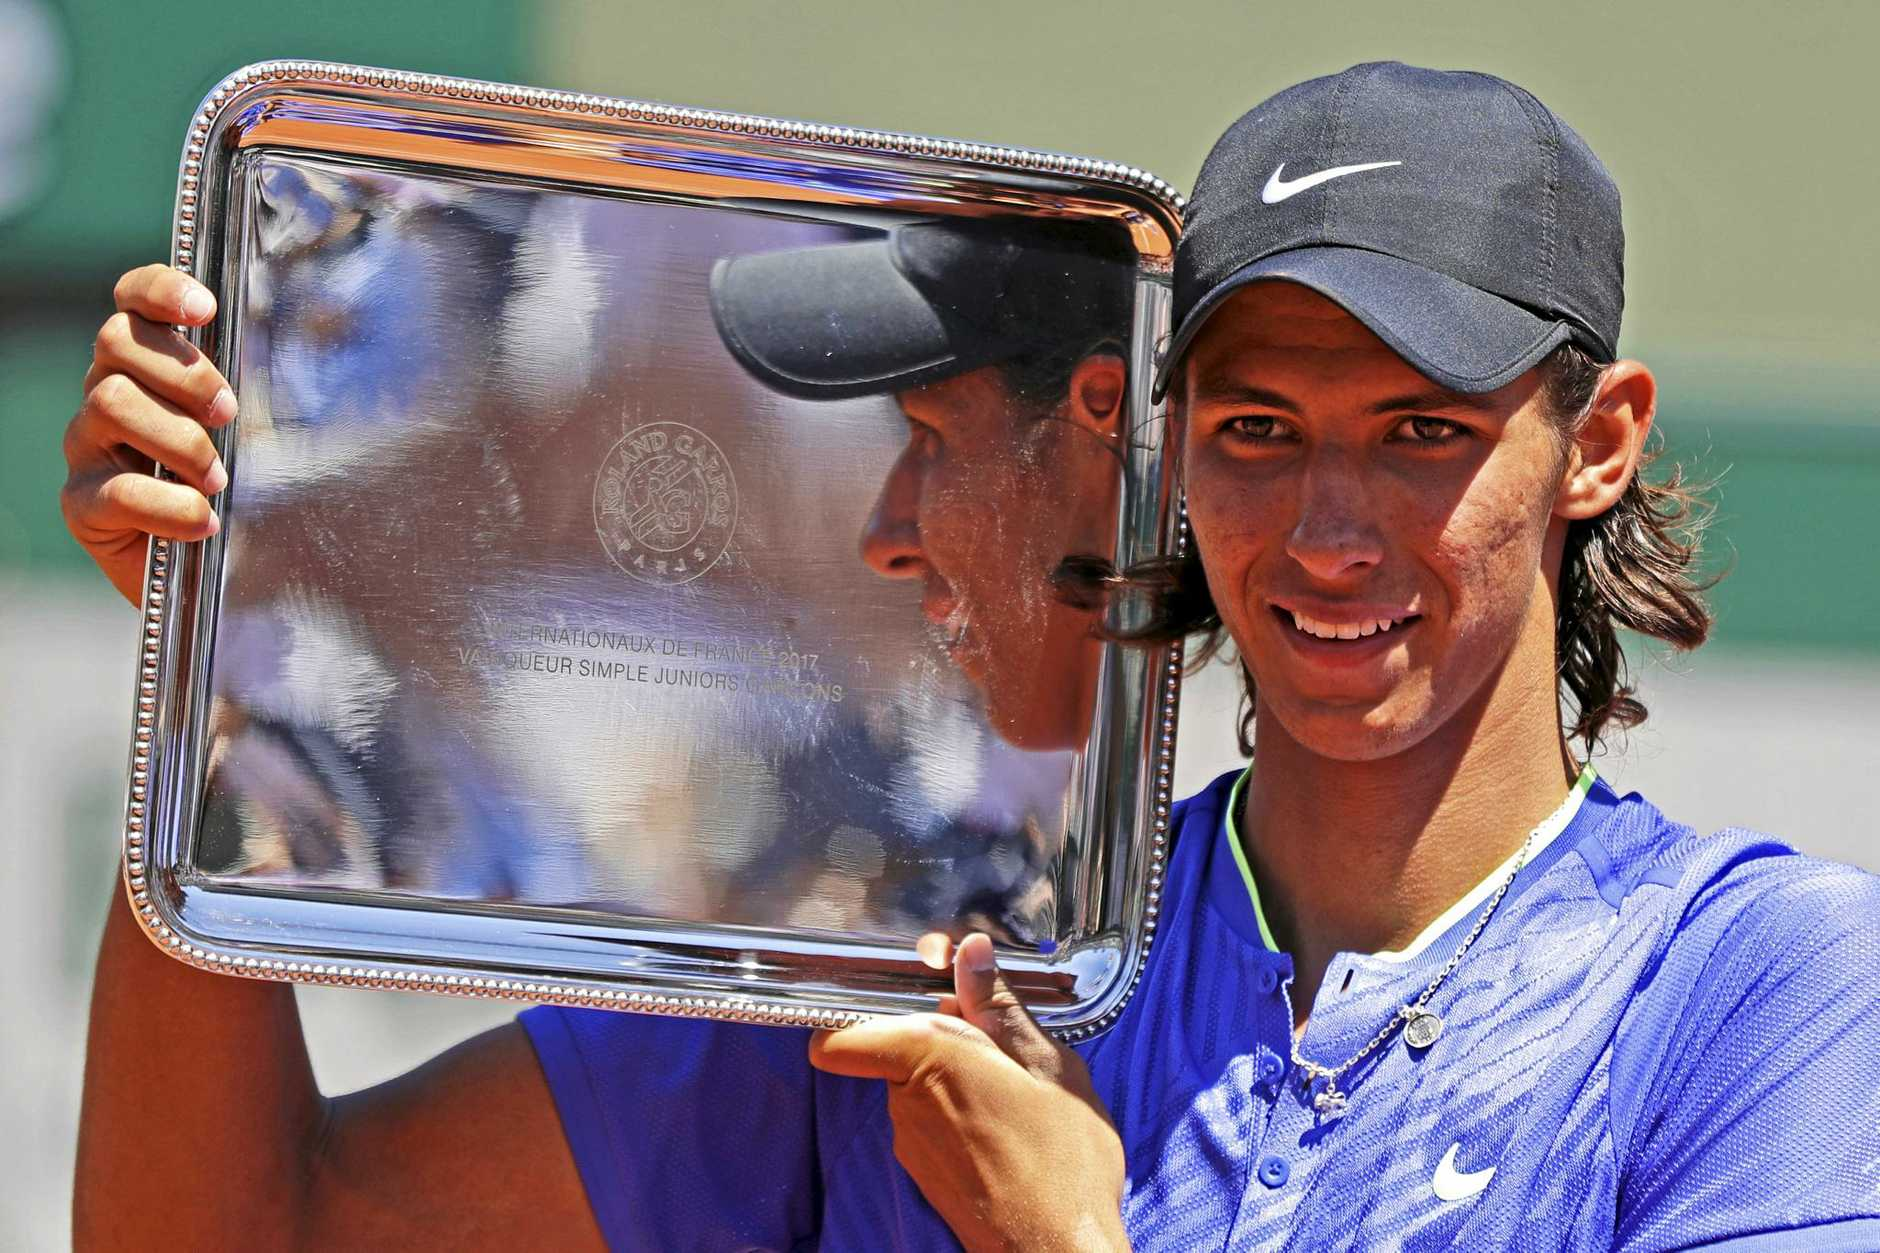 Australia's Alexei Popyrin hold the trophy after winning the boys' final of the French Open.